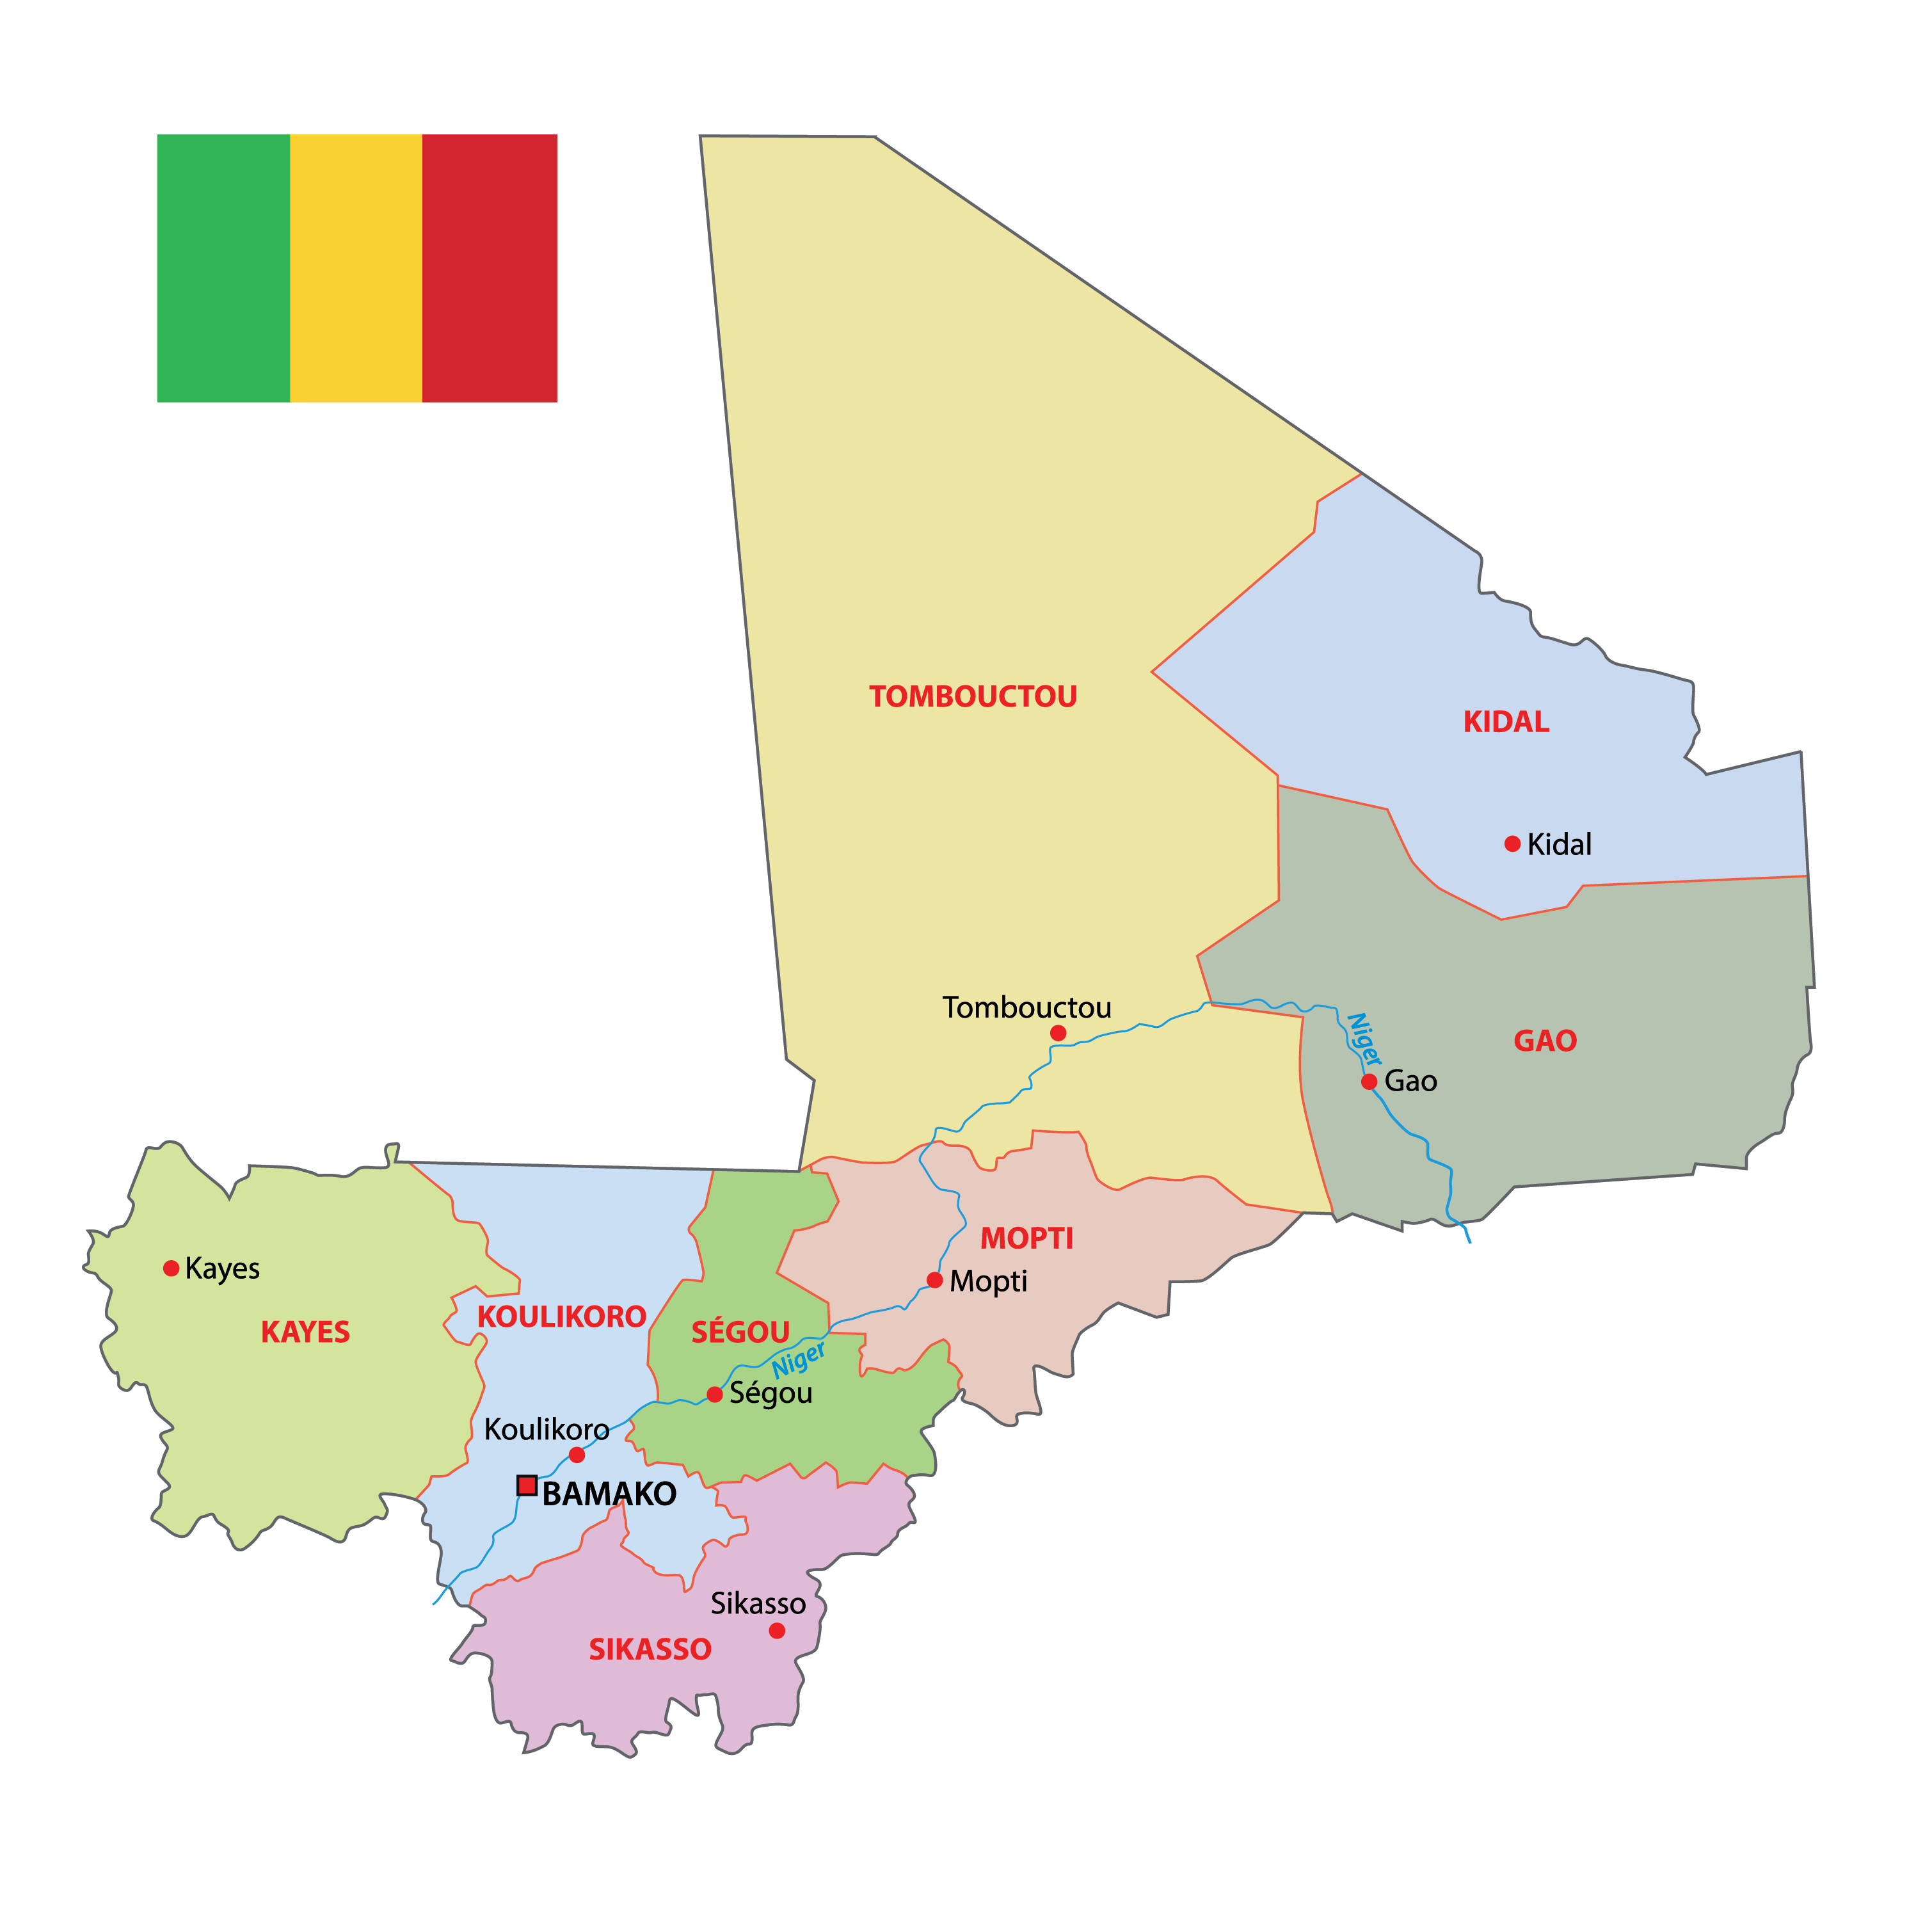 Political Map of Mali displaying 10 regions, their capital, and the national capital of Bamako.